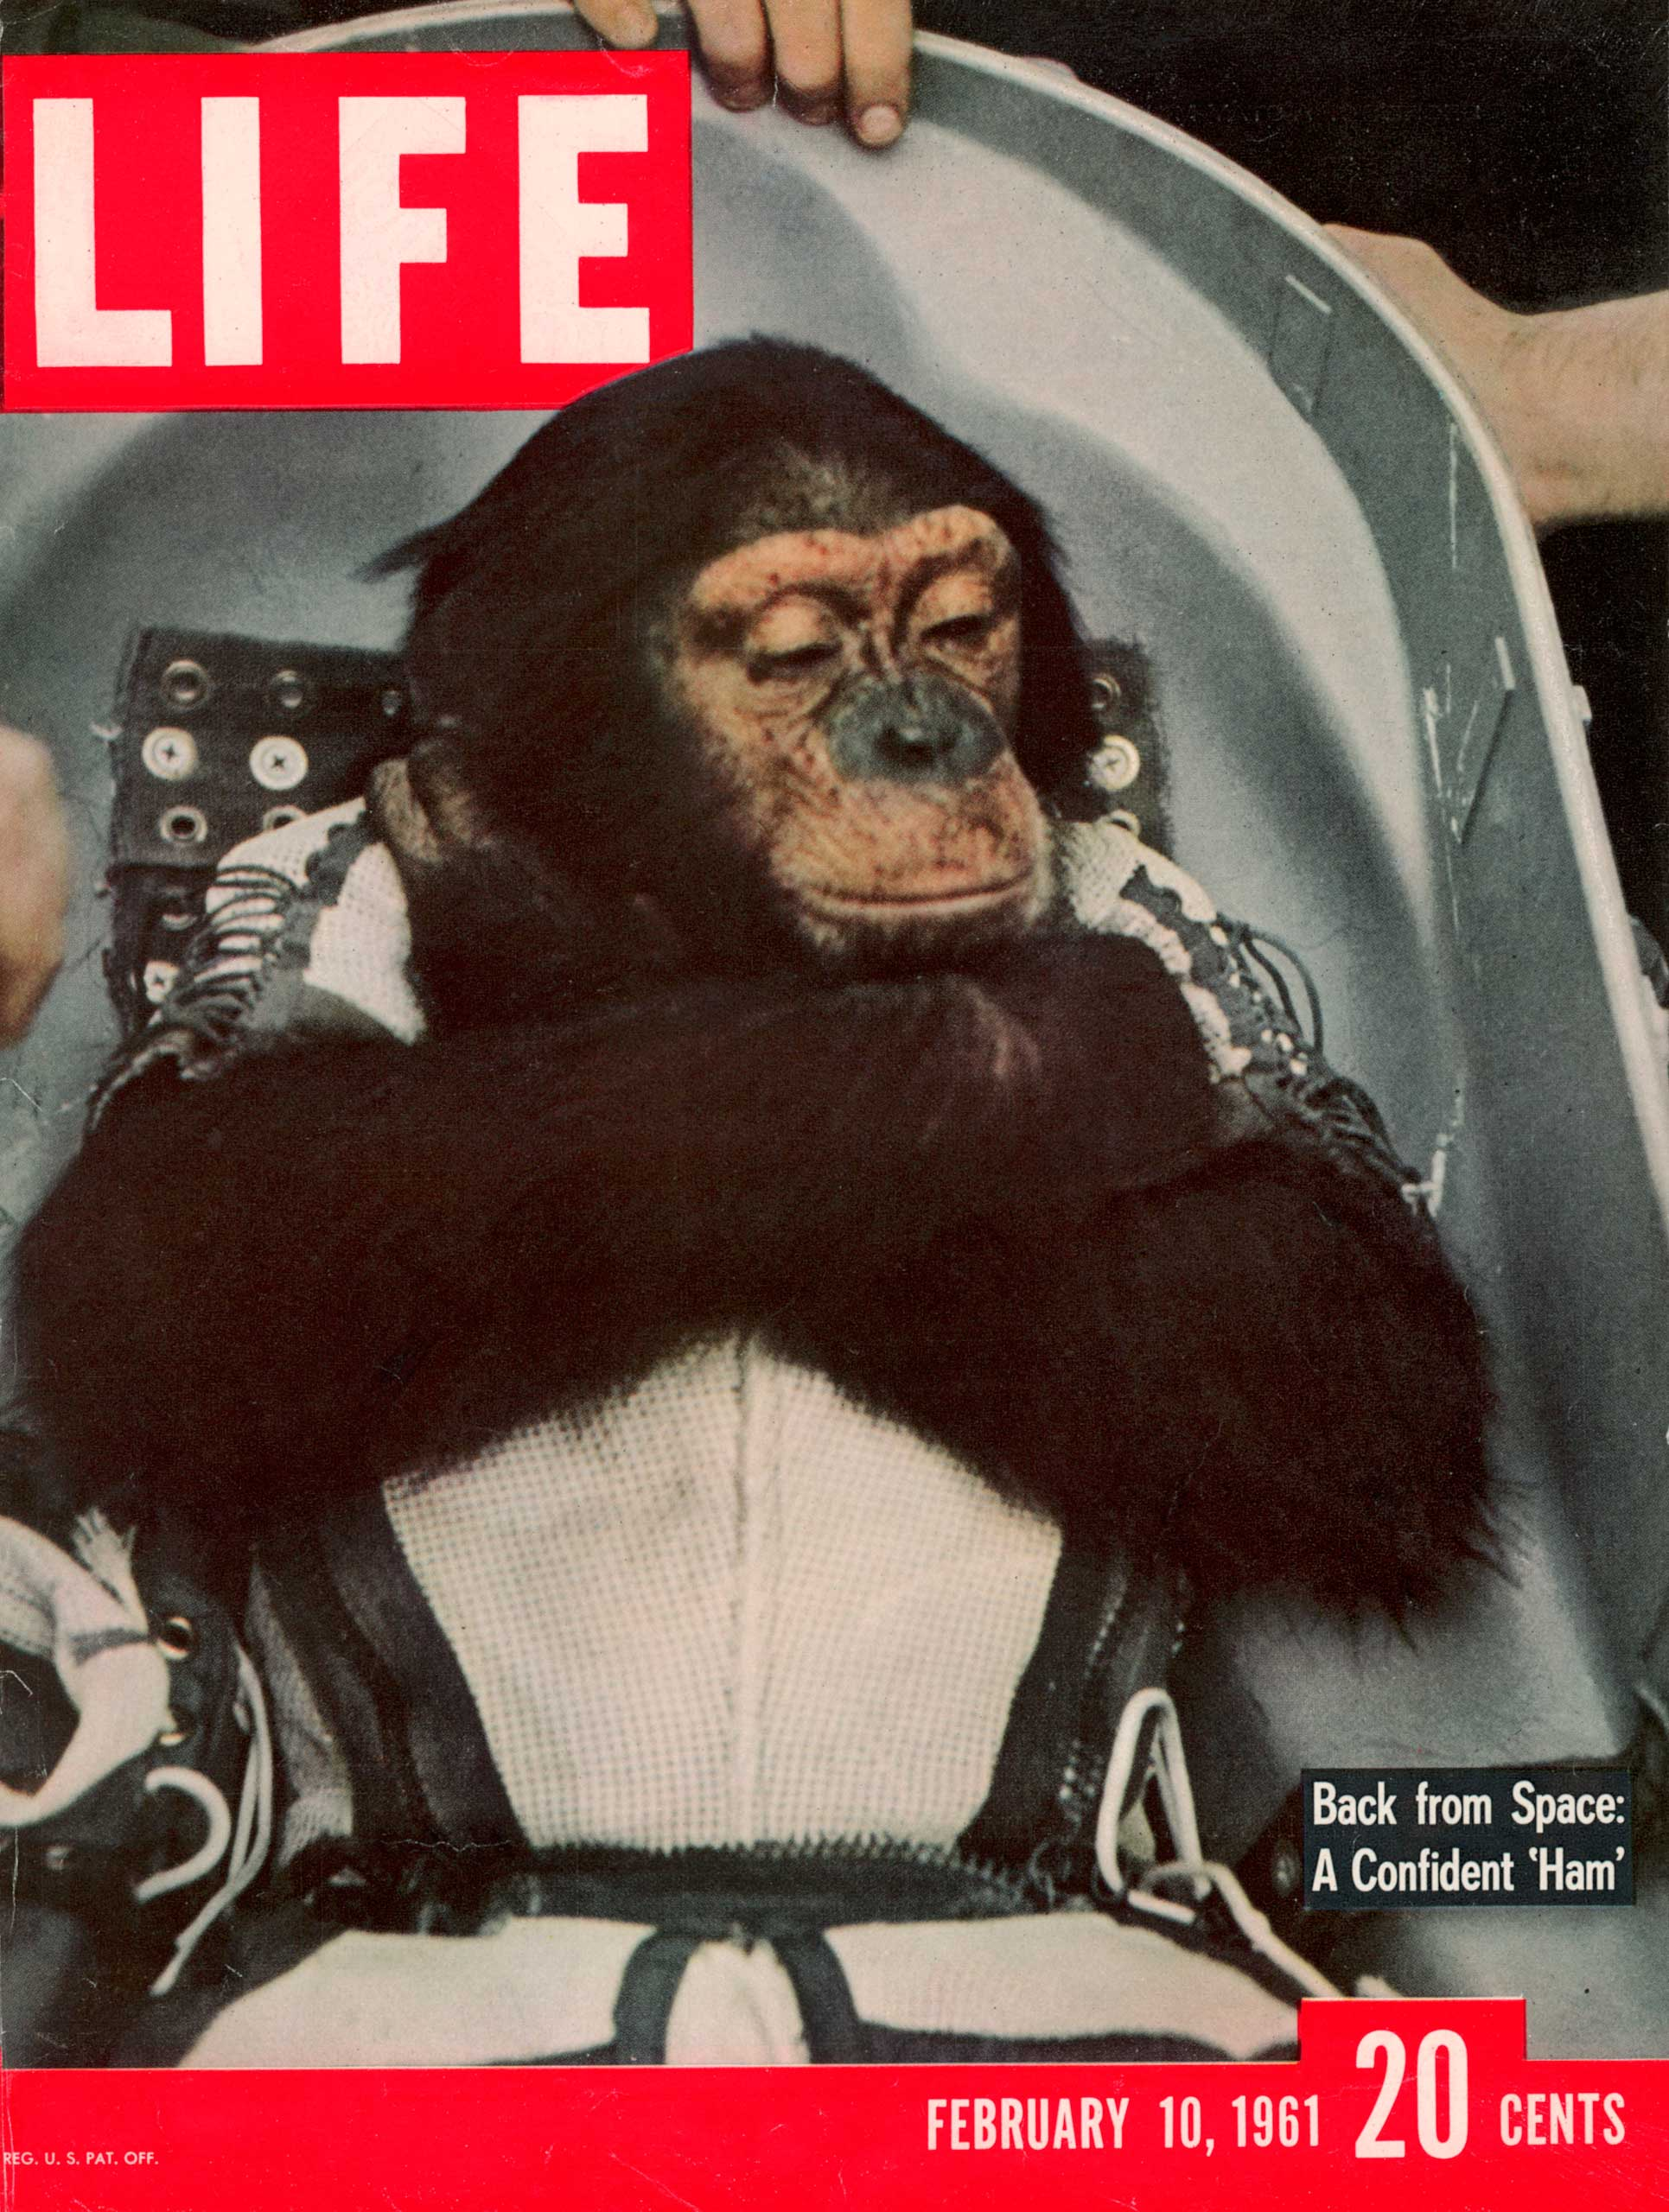 LIFE cover, Feb. 10, 1961. Ham the Chimpanzee in the space capsule after returning from the Mercury Redstone 2 space flight.